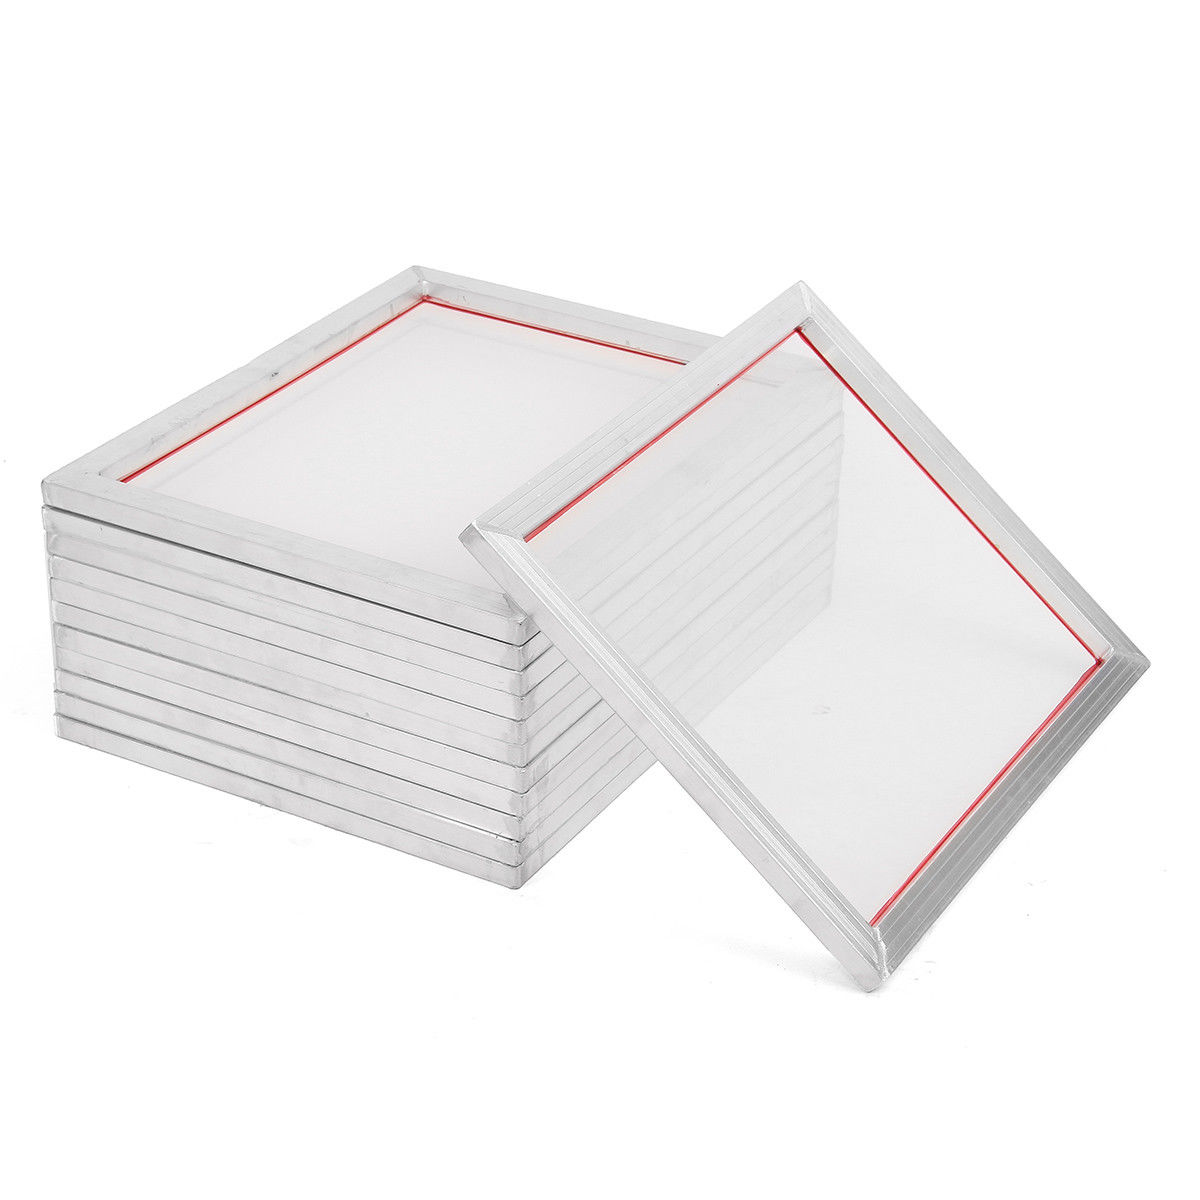 2Pcs A5 Screen Printing Aluminium Frame Stretched 32*22cm With 32T-120T Silk Print Polyester Mesh for Printed Circuit Boards2Pcs A5 Screen Printing Aluminium Frame Stretched 32*22cm With 32T-120T Silk Print Polyester Mesh for Printed Circuit Boards